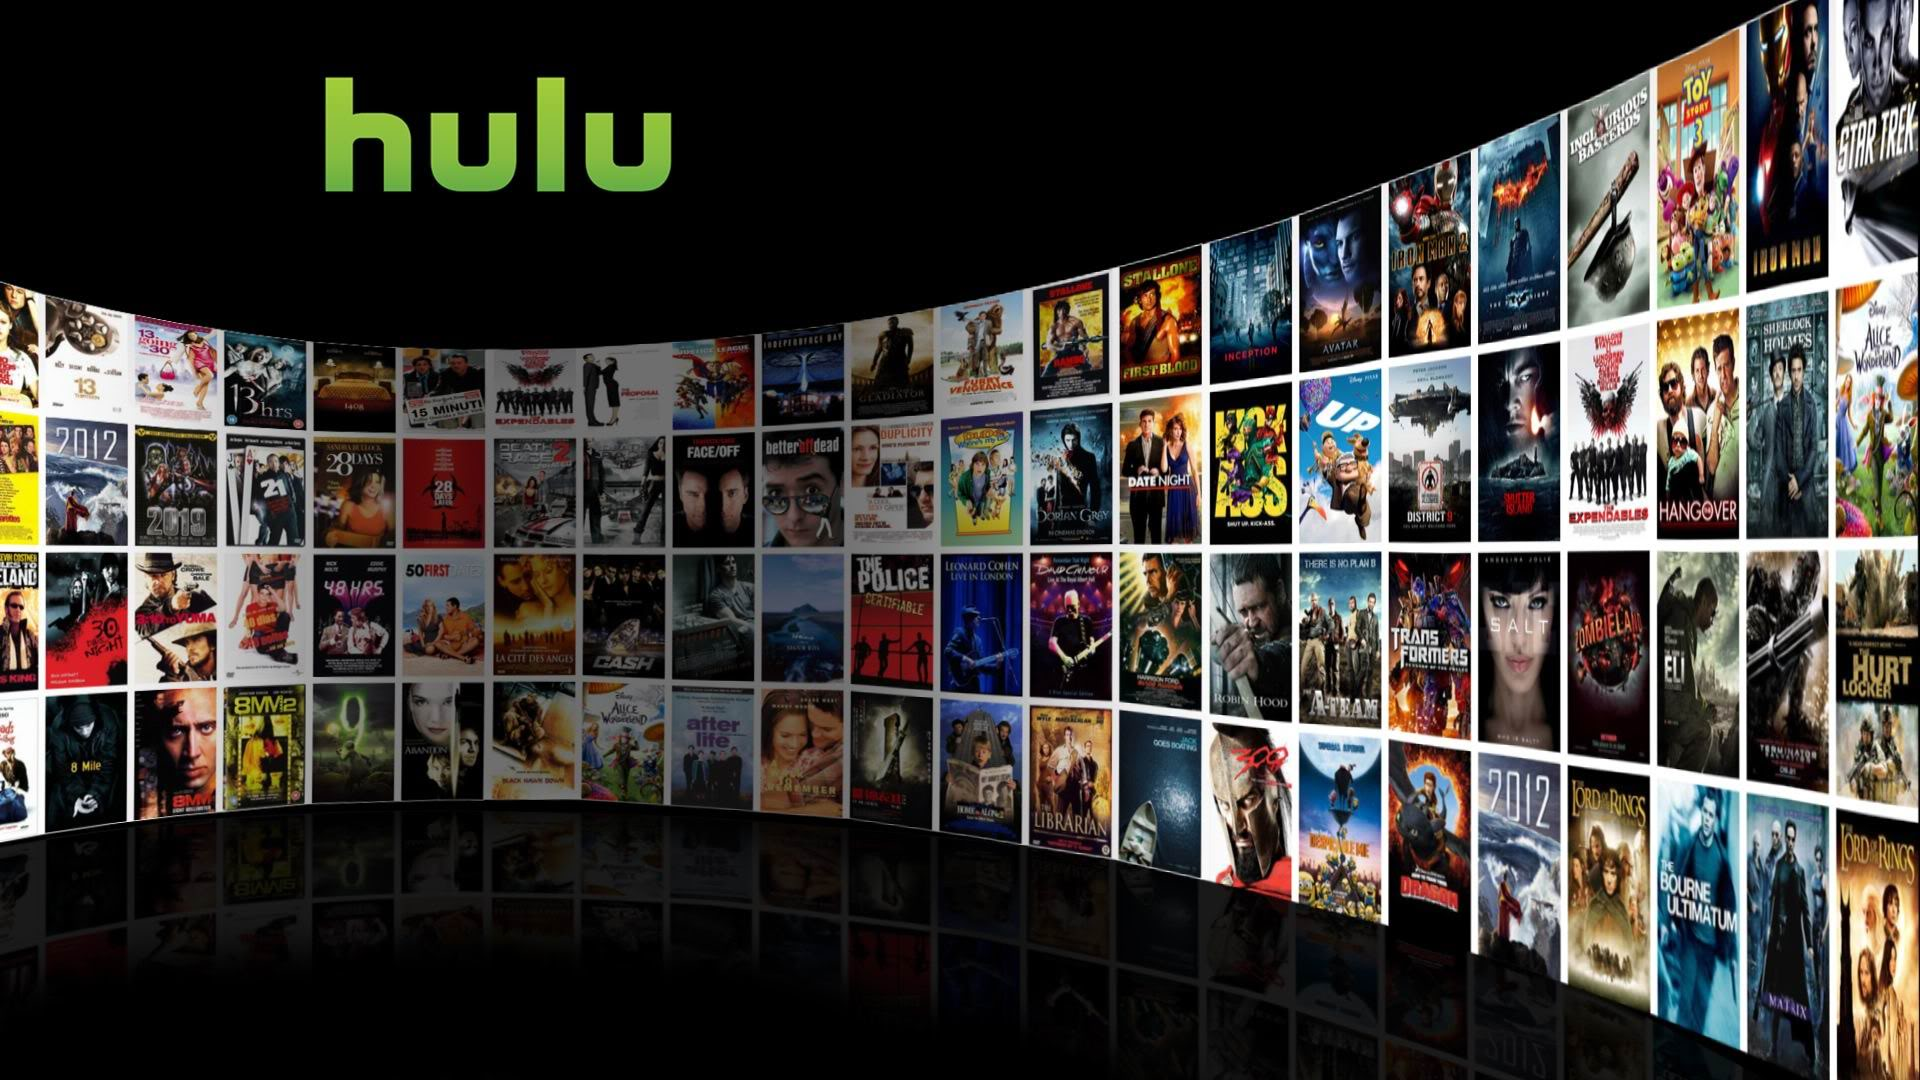 Hulu, YouTube sign up 3MN for live TV services | OTT | News | Rapid